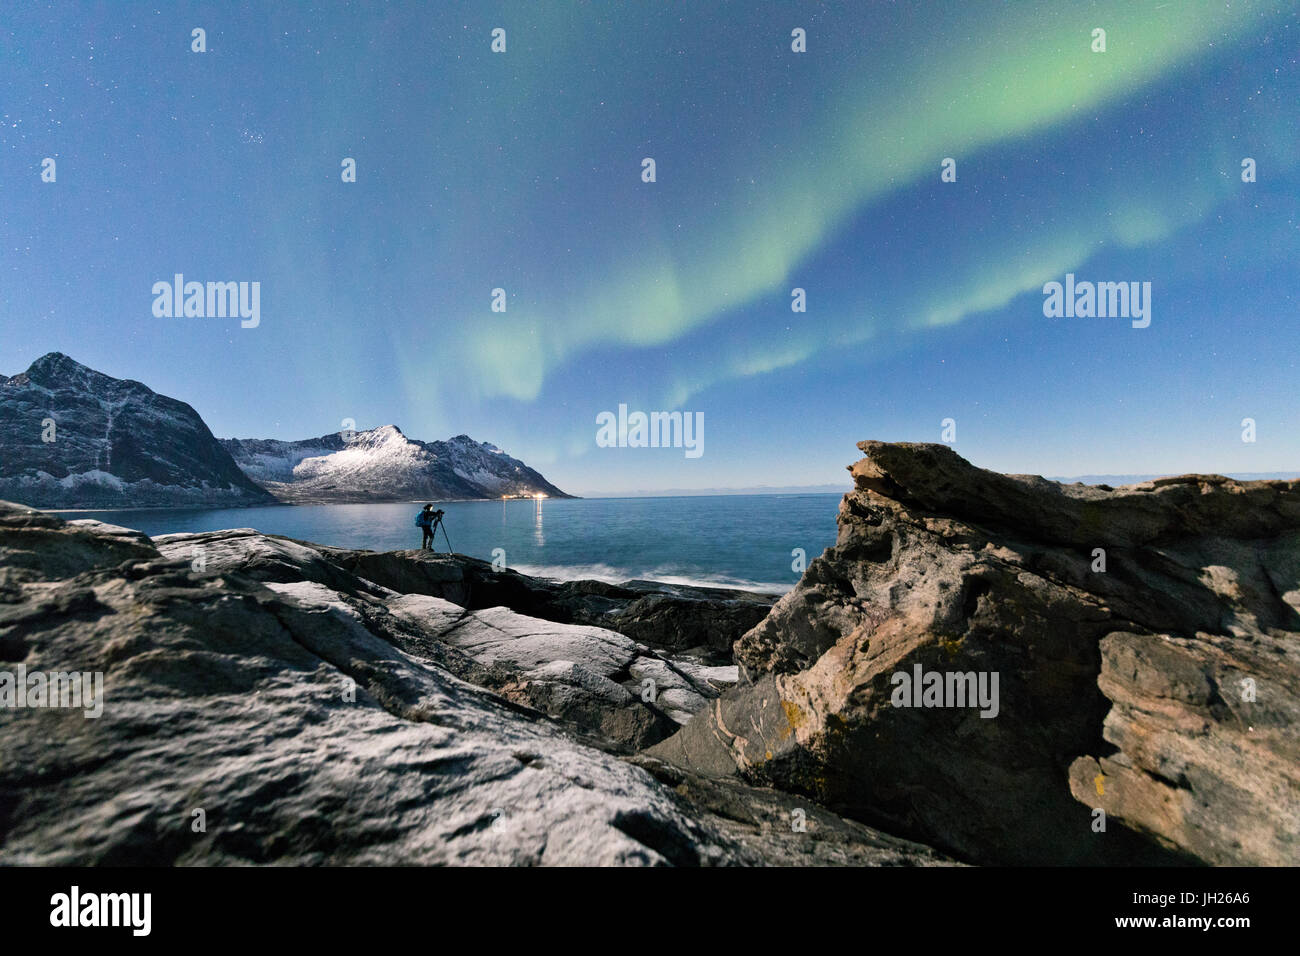 Photographer under the stars and Northern Lights surrounded by rocky peaks and icy sea, Tungeneset, Senja, Troms, - Stock Image